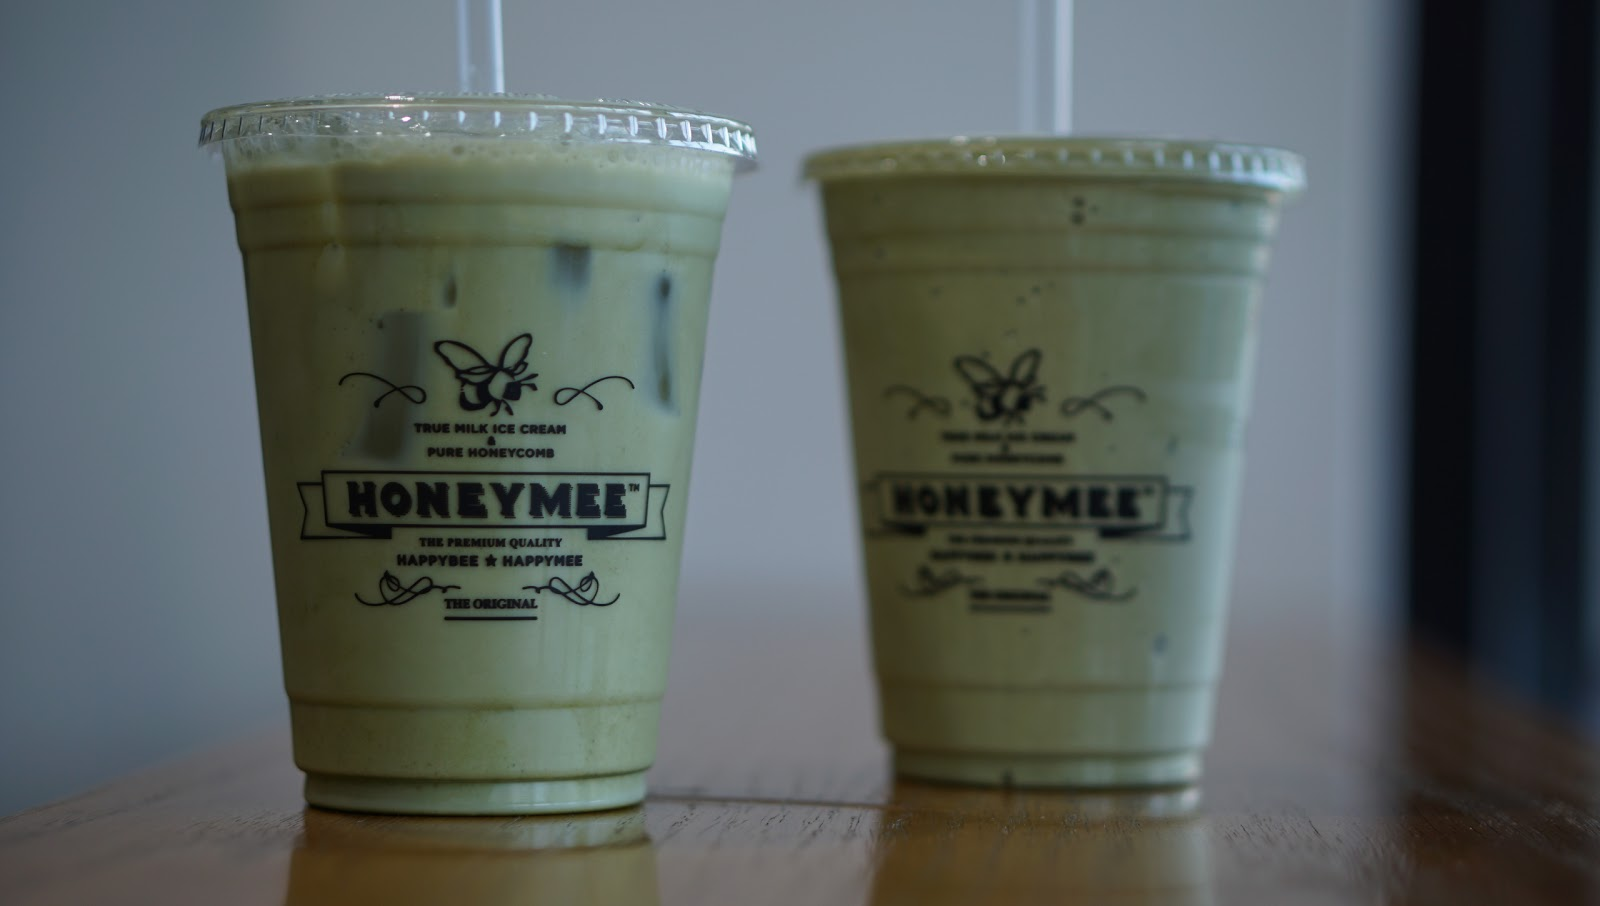 Matcha Needed Desserts From Honeymee!